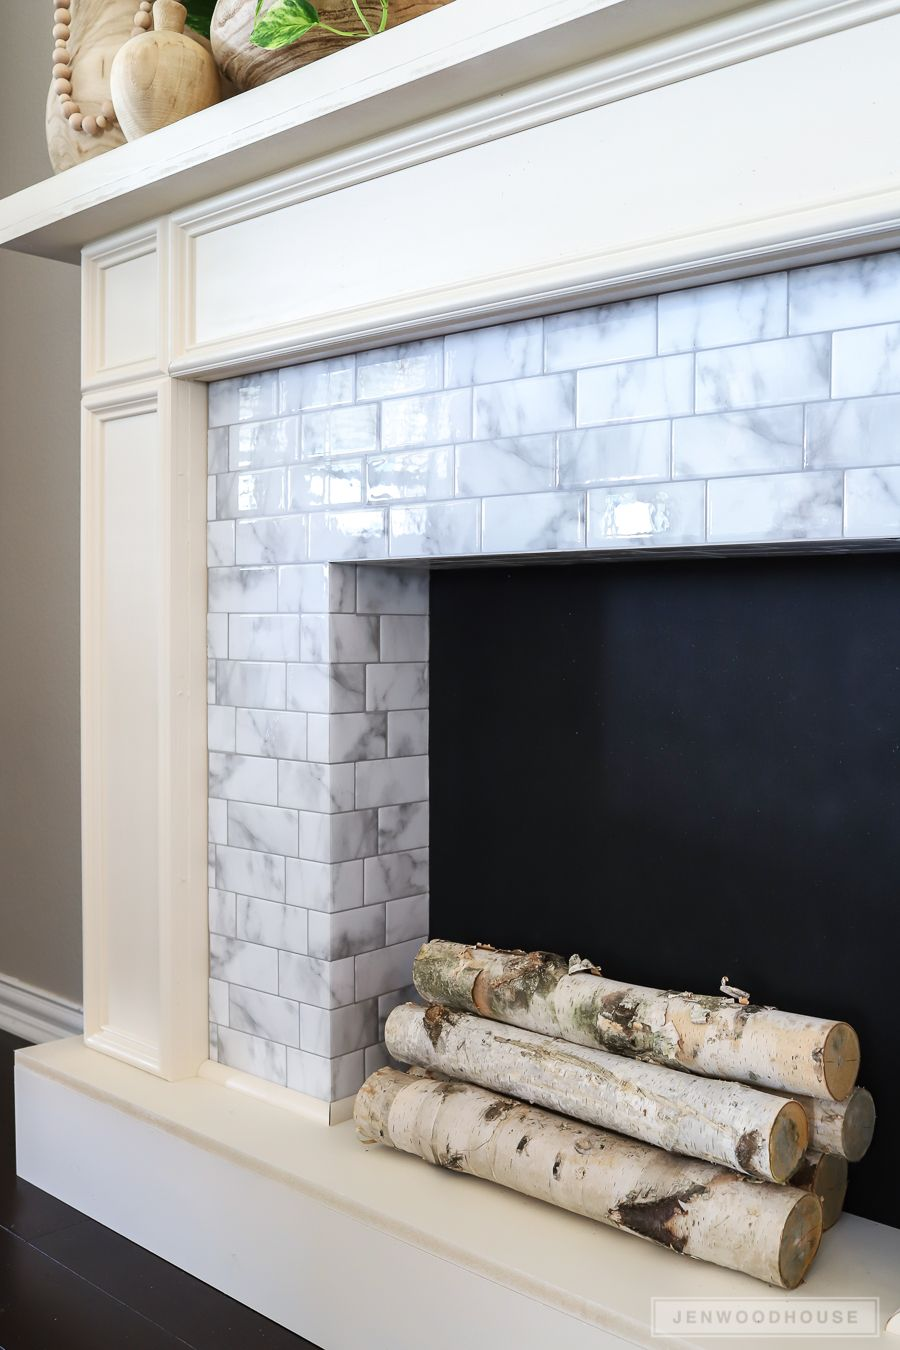 How To Make A Diy Faux Fireplace Featuring Smart Tiles Adhesive Tiles Faux Fireplace Diy Faux Fireplace Smart Tiles